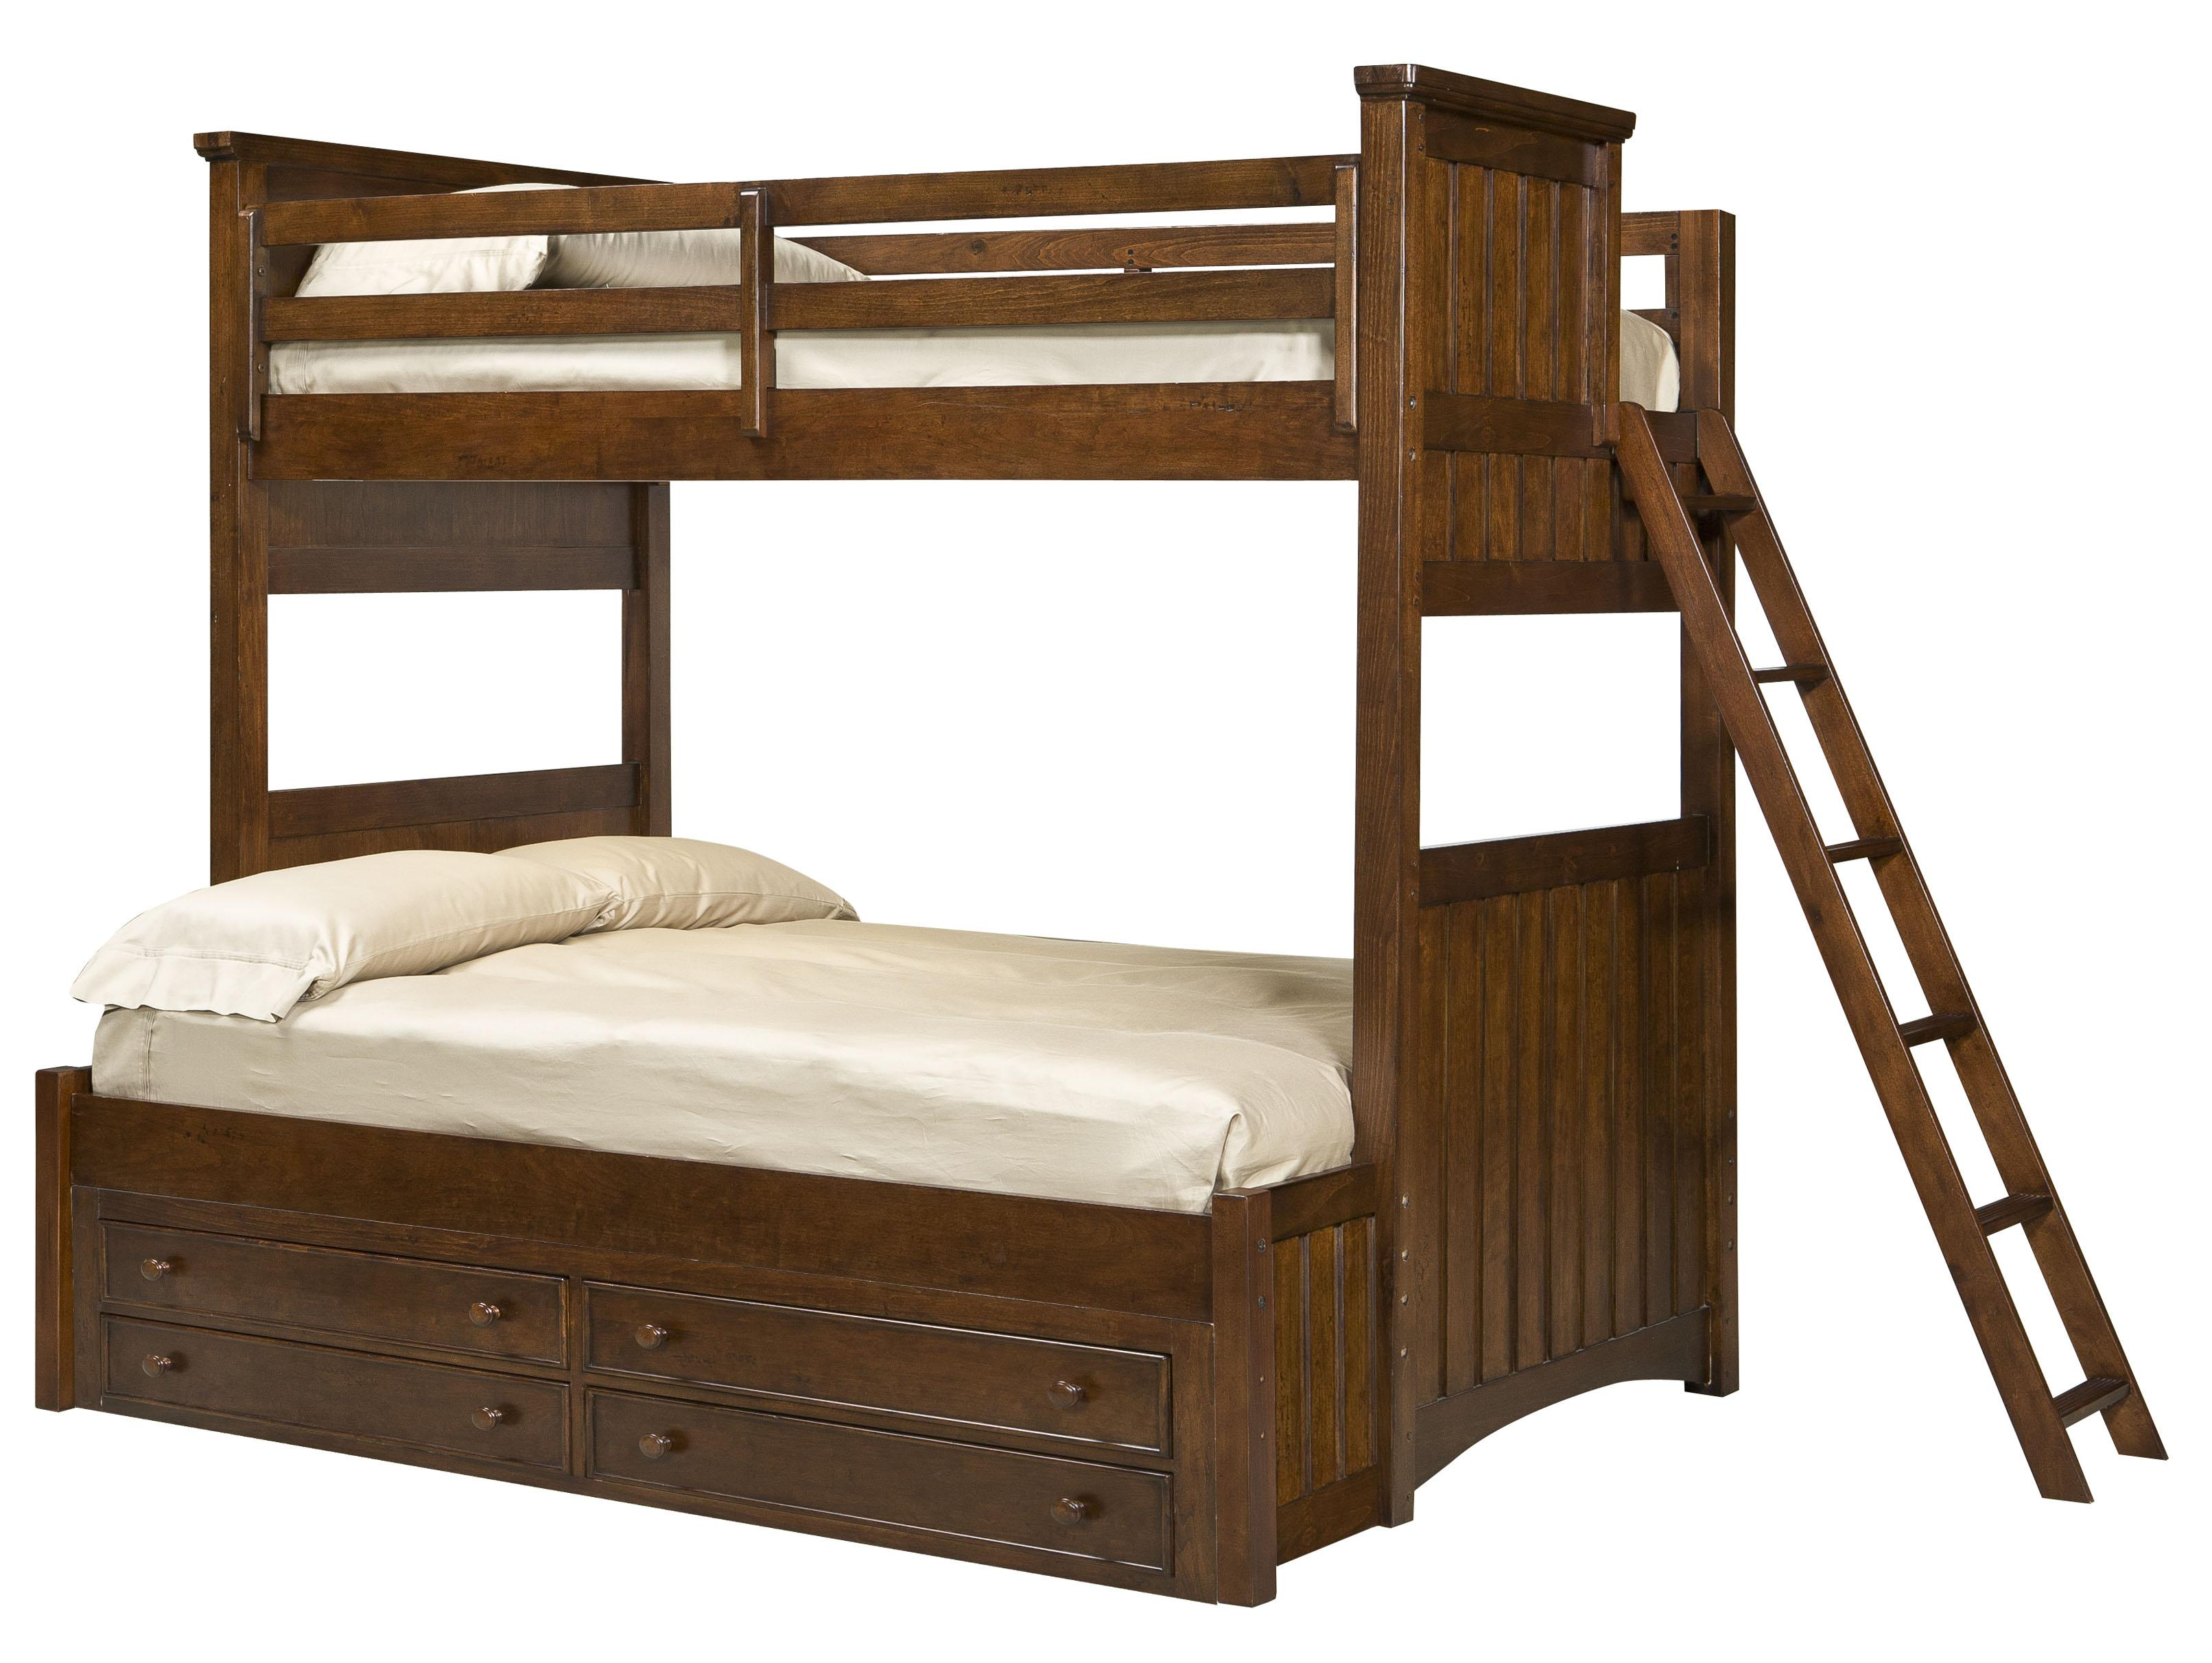 Legacy Classic Kids Dawsons Ridge Twin-over-Full Bunk w/ Underbed Storage Unit - Item Number: Twin-Over-FullBunk+9100